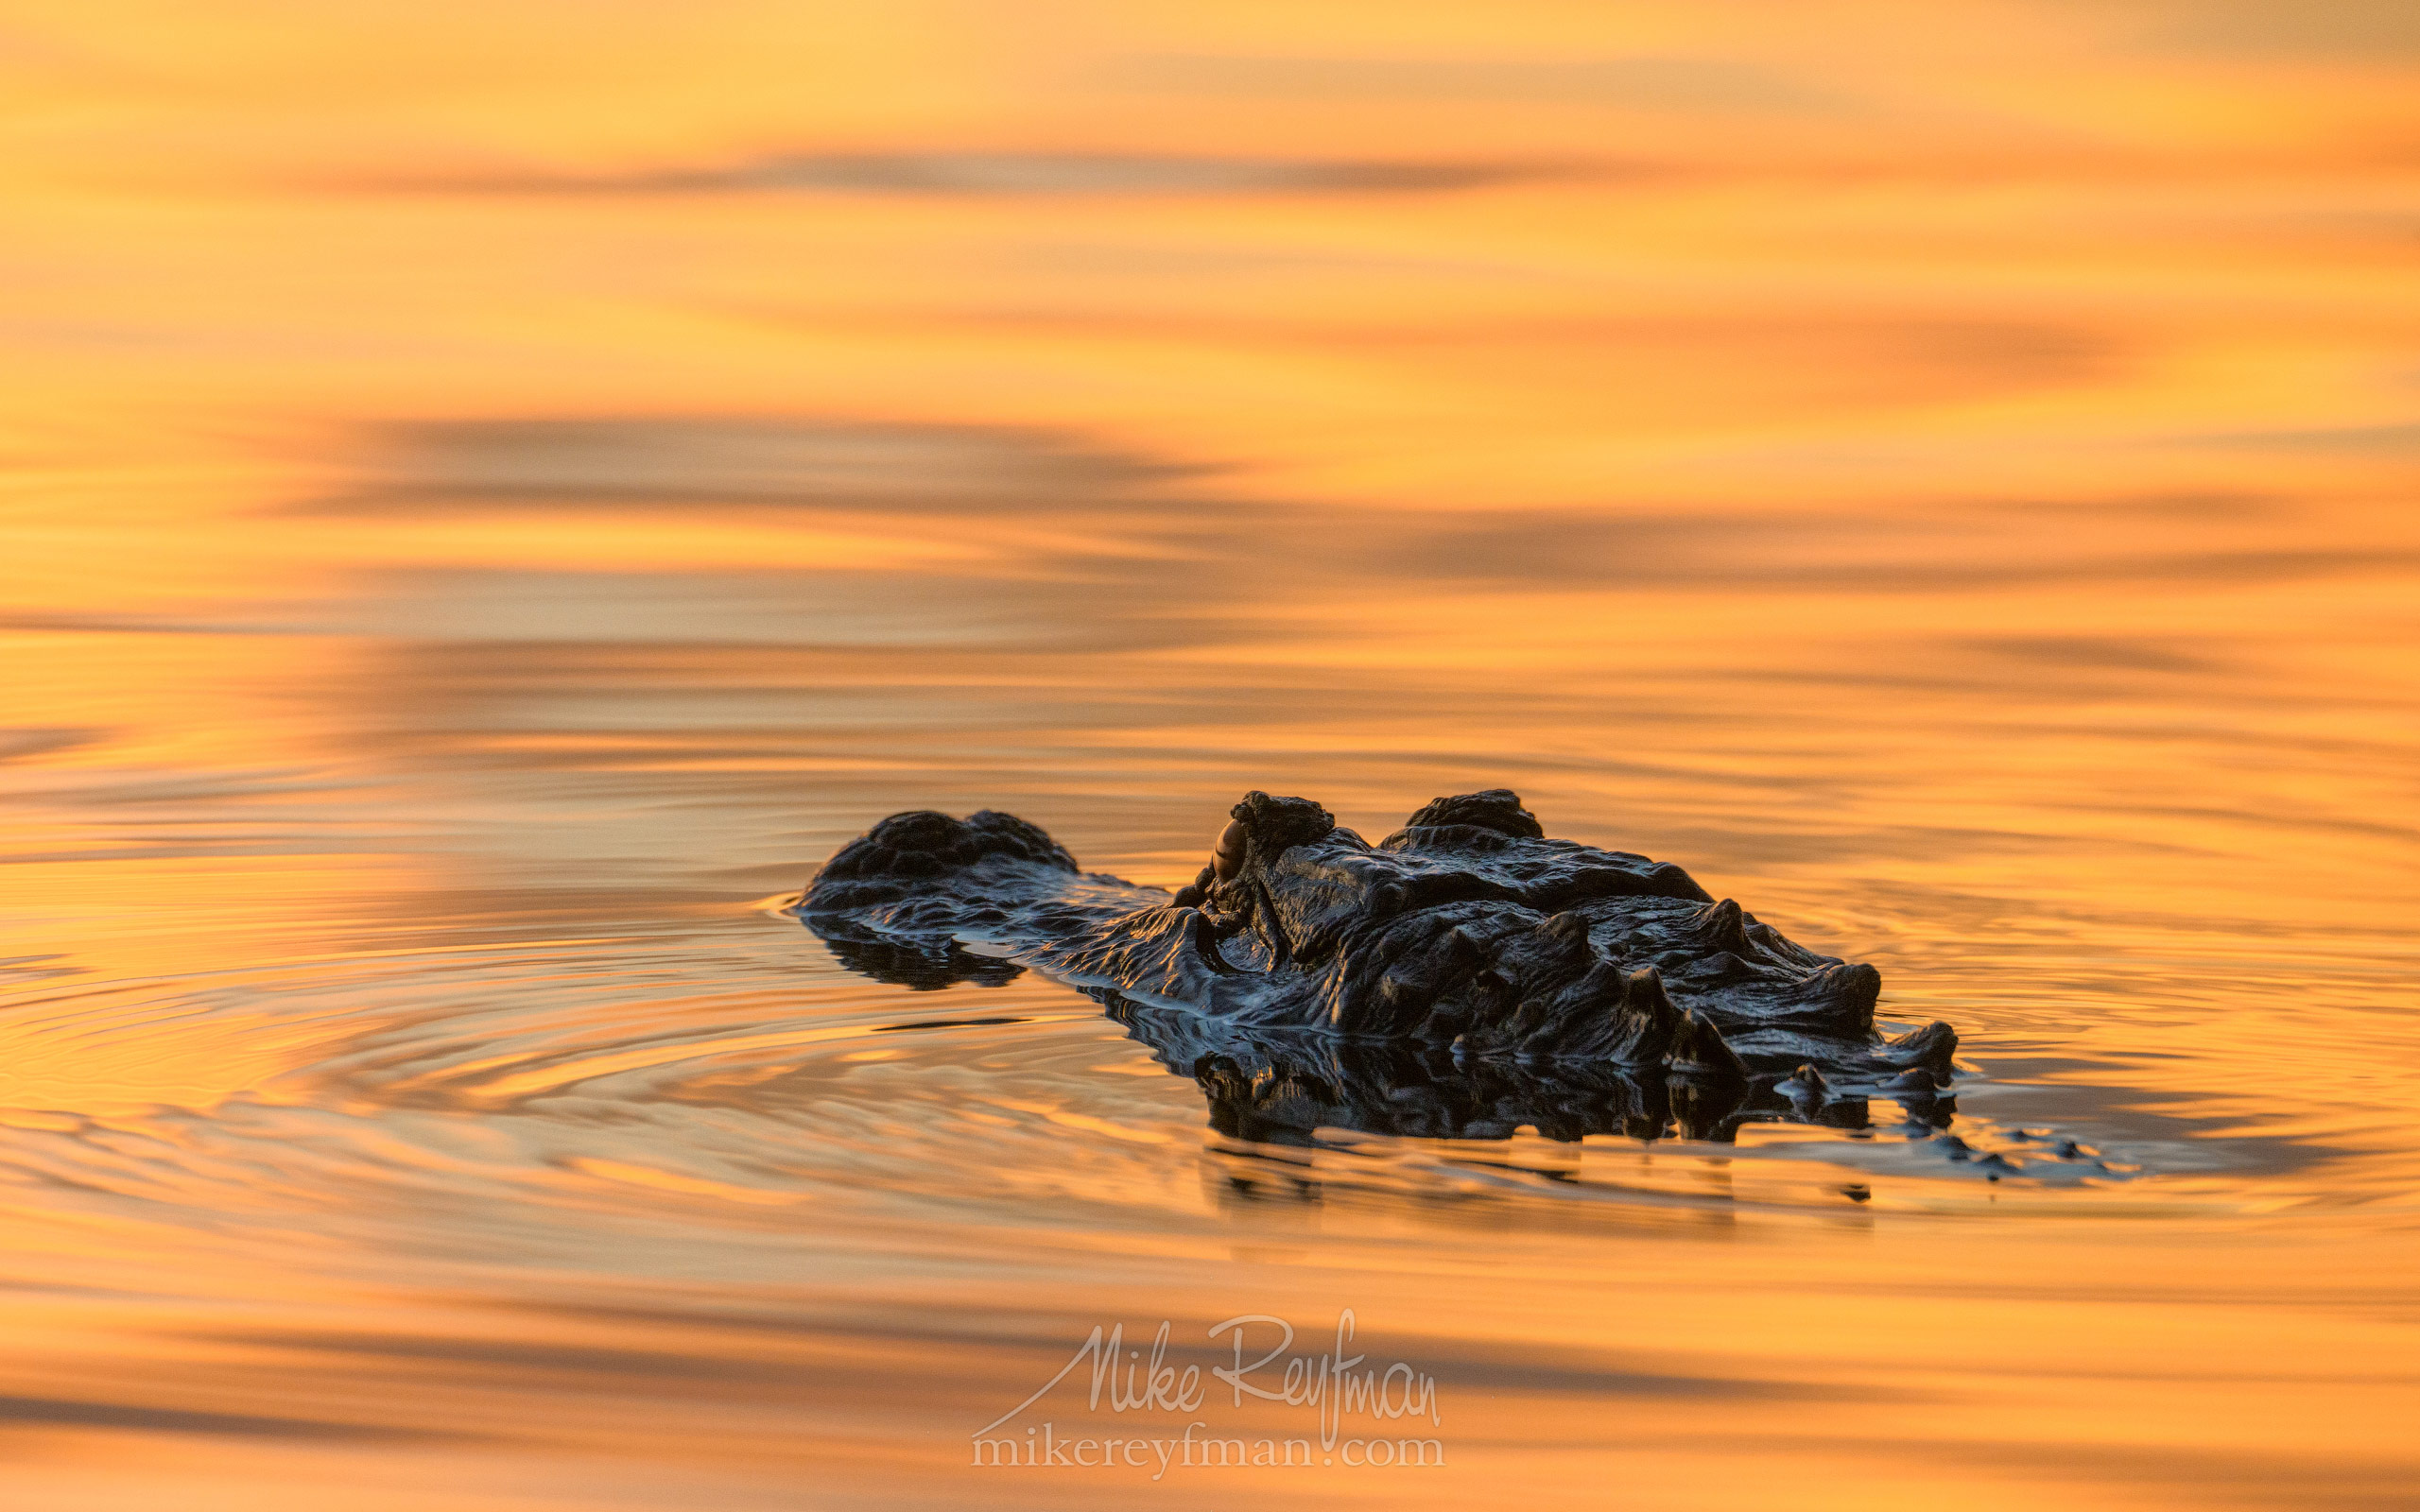 American Alligator in golden light at sunset. Lake Martin, Louisiana, US 085-LT1-50A4618.jpg - Bold Cypress and Tupelo Trees in the swamps of Atchafalaya River Basin. Caddo, Martin and Fousse Lakes. Texas/Louisiana, USA. - Mike Reyfman Photography